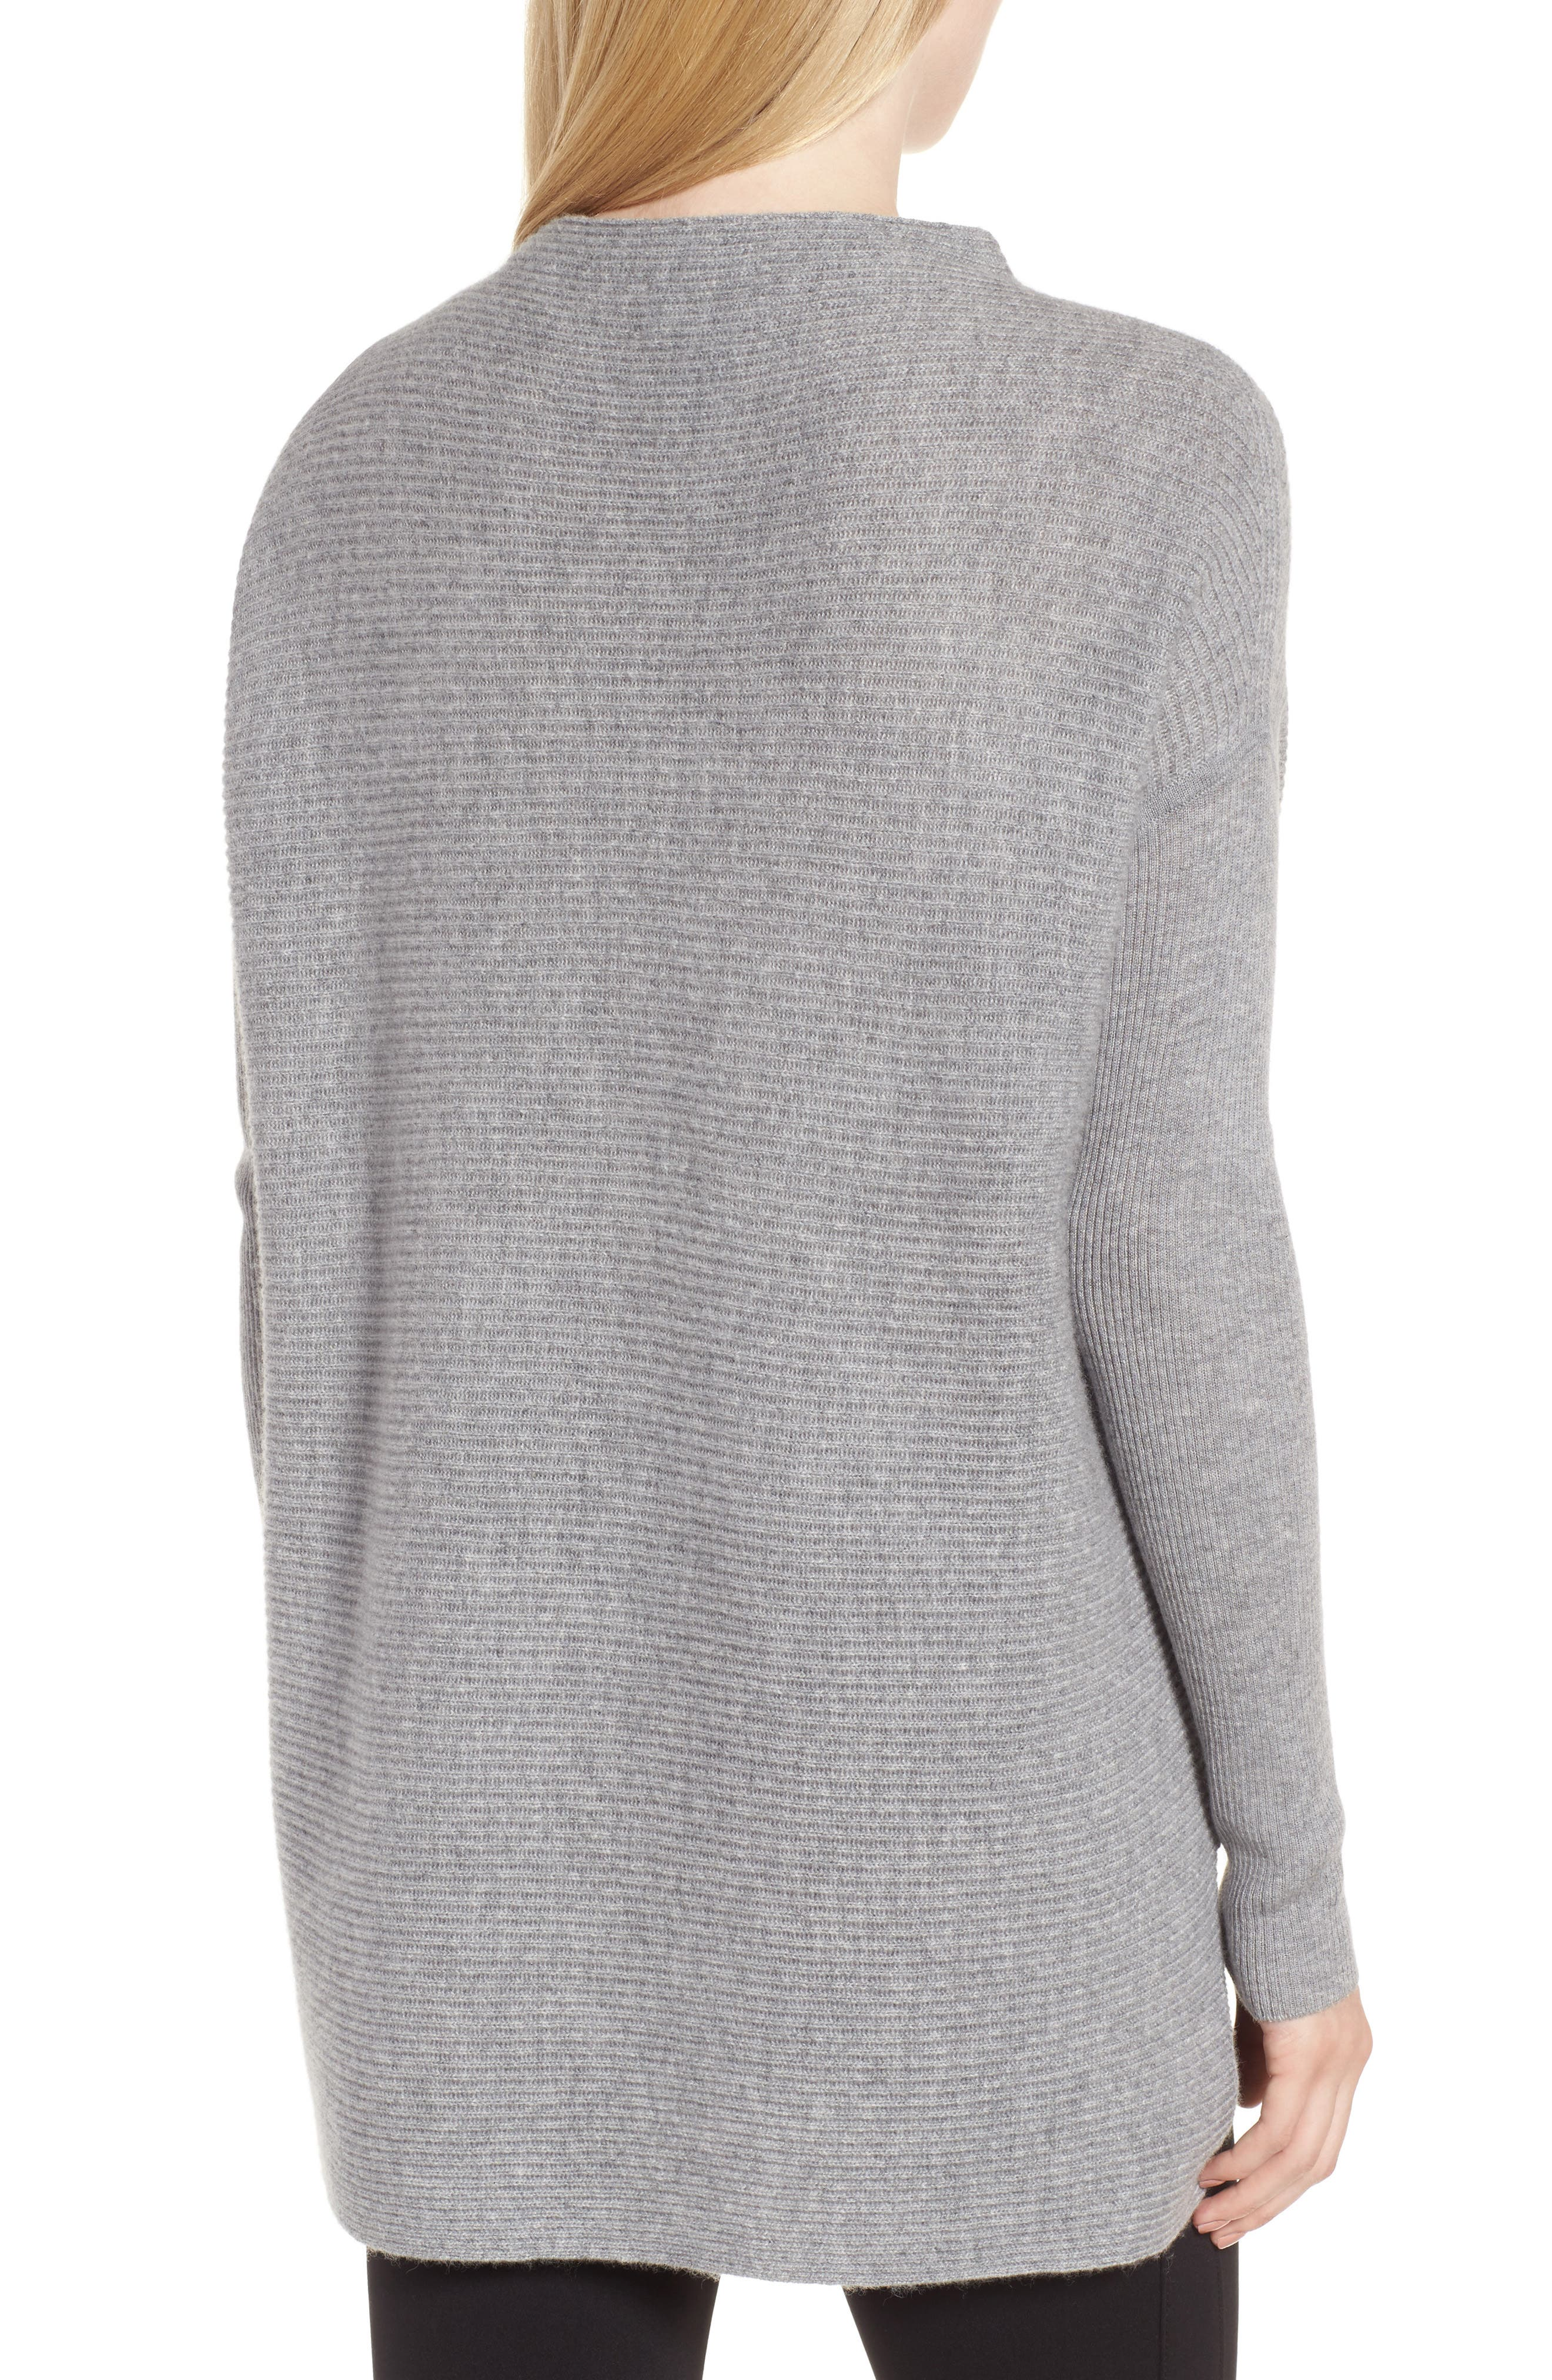 Cashmere Asymmetrical Pullover,                             Alternate thumbnail 2, color,                             GREY FILIGREE HEATHER